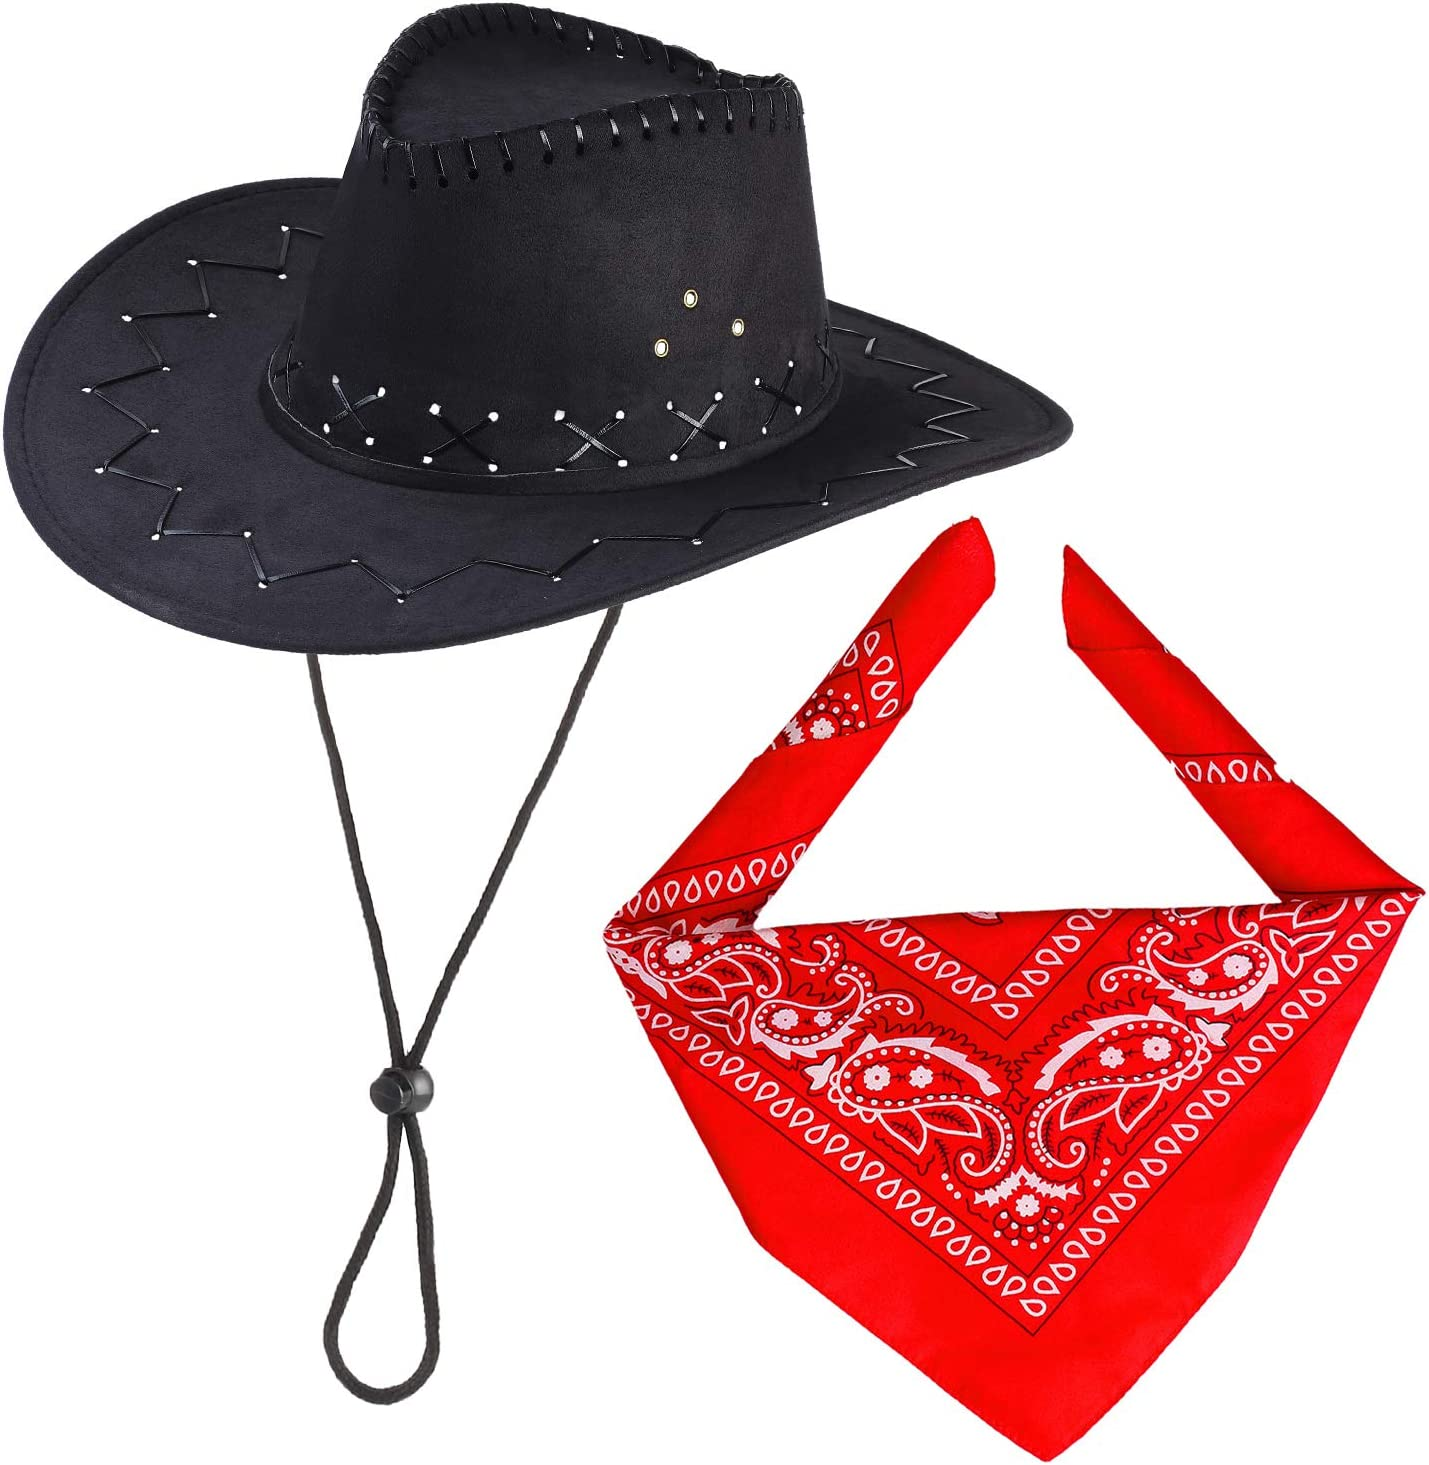 Beefunny Cowboy Hat With Cowboys accessories - Western Sheriff Bandana  Headband Gift Sets for both adult and kids (Black)